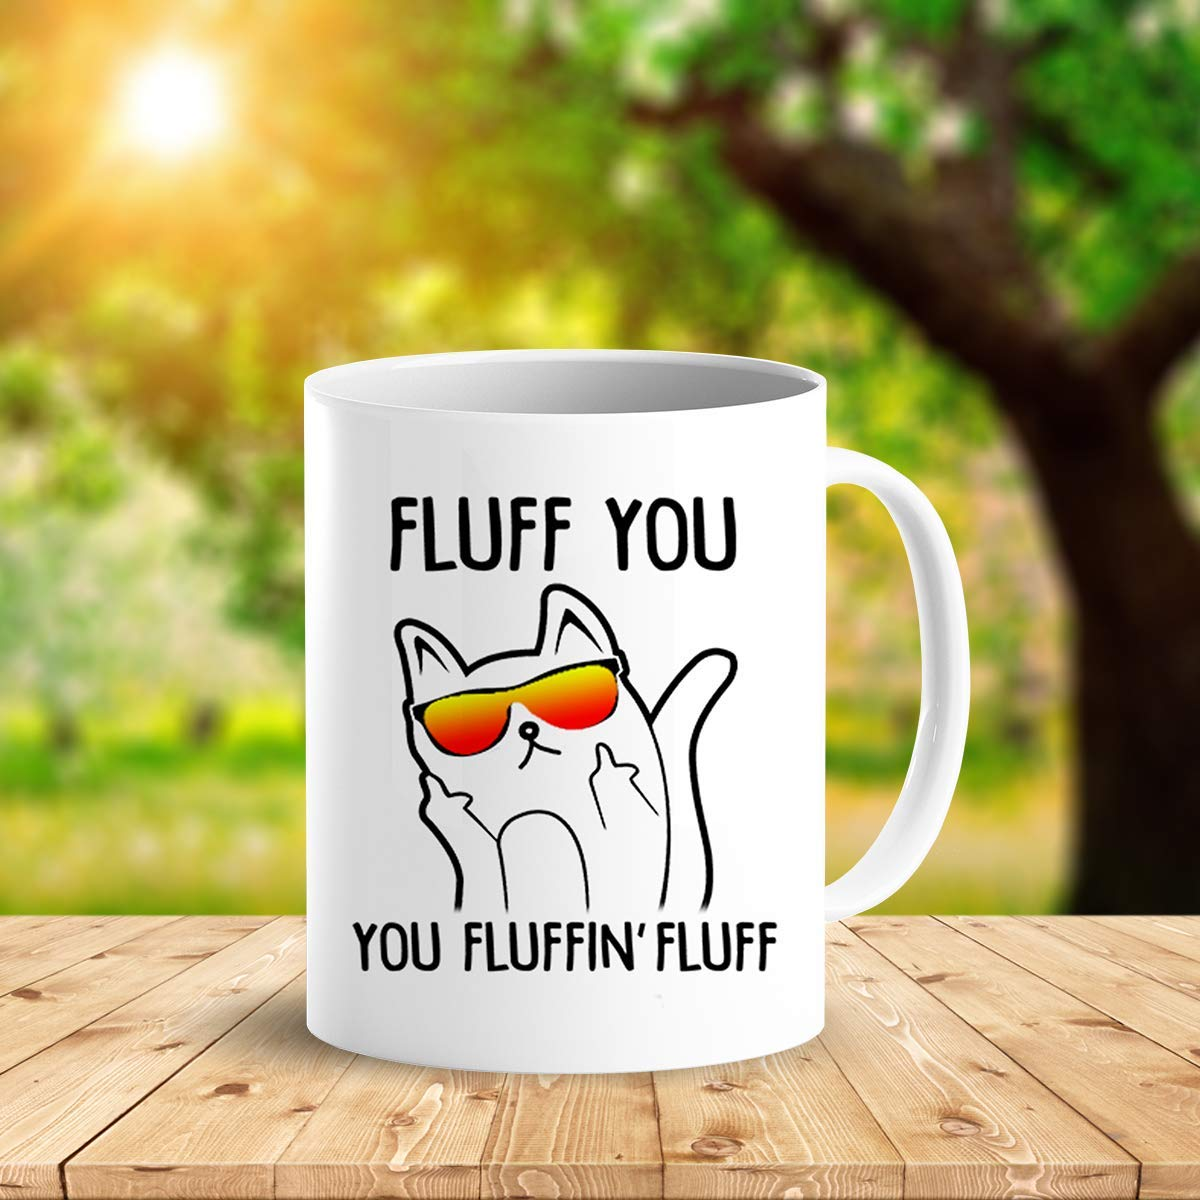 Heat Sensitive Color Changing Coffee Mug Funny Coffee Cup Fluff You You Fluffin Fluff Cat Design Funny Gift Idea B079FZ78QP 4